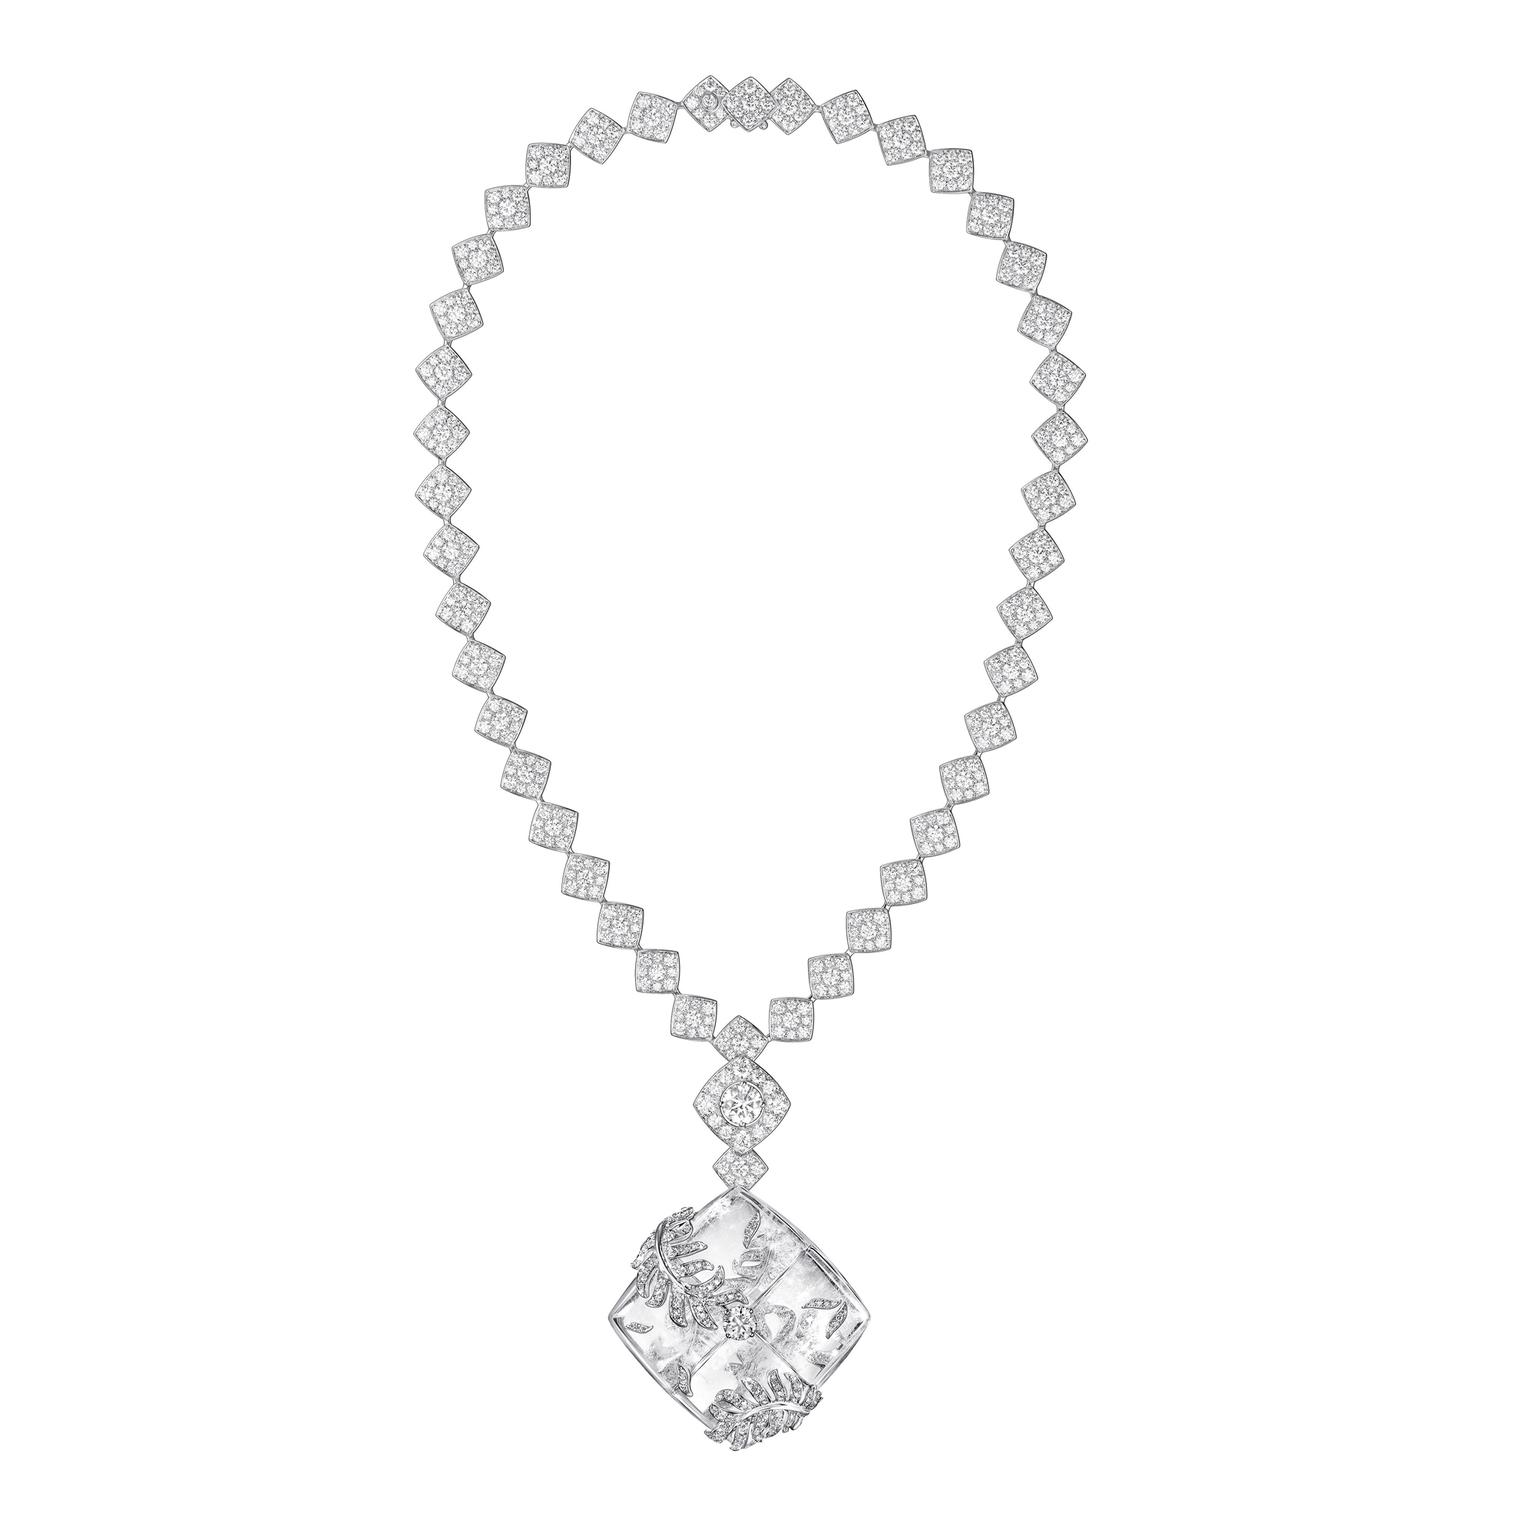 Chanel signature Cocoon rock crystal necklace